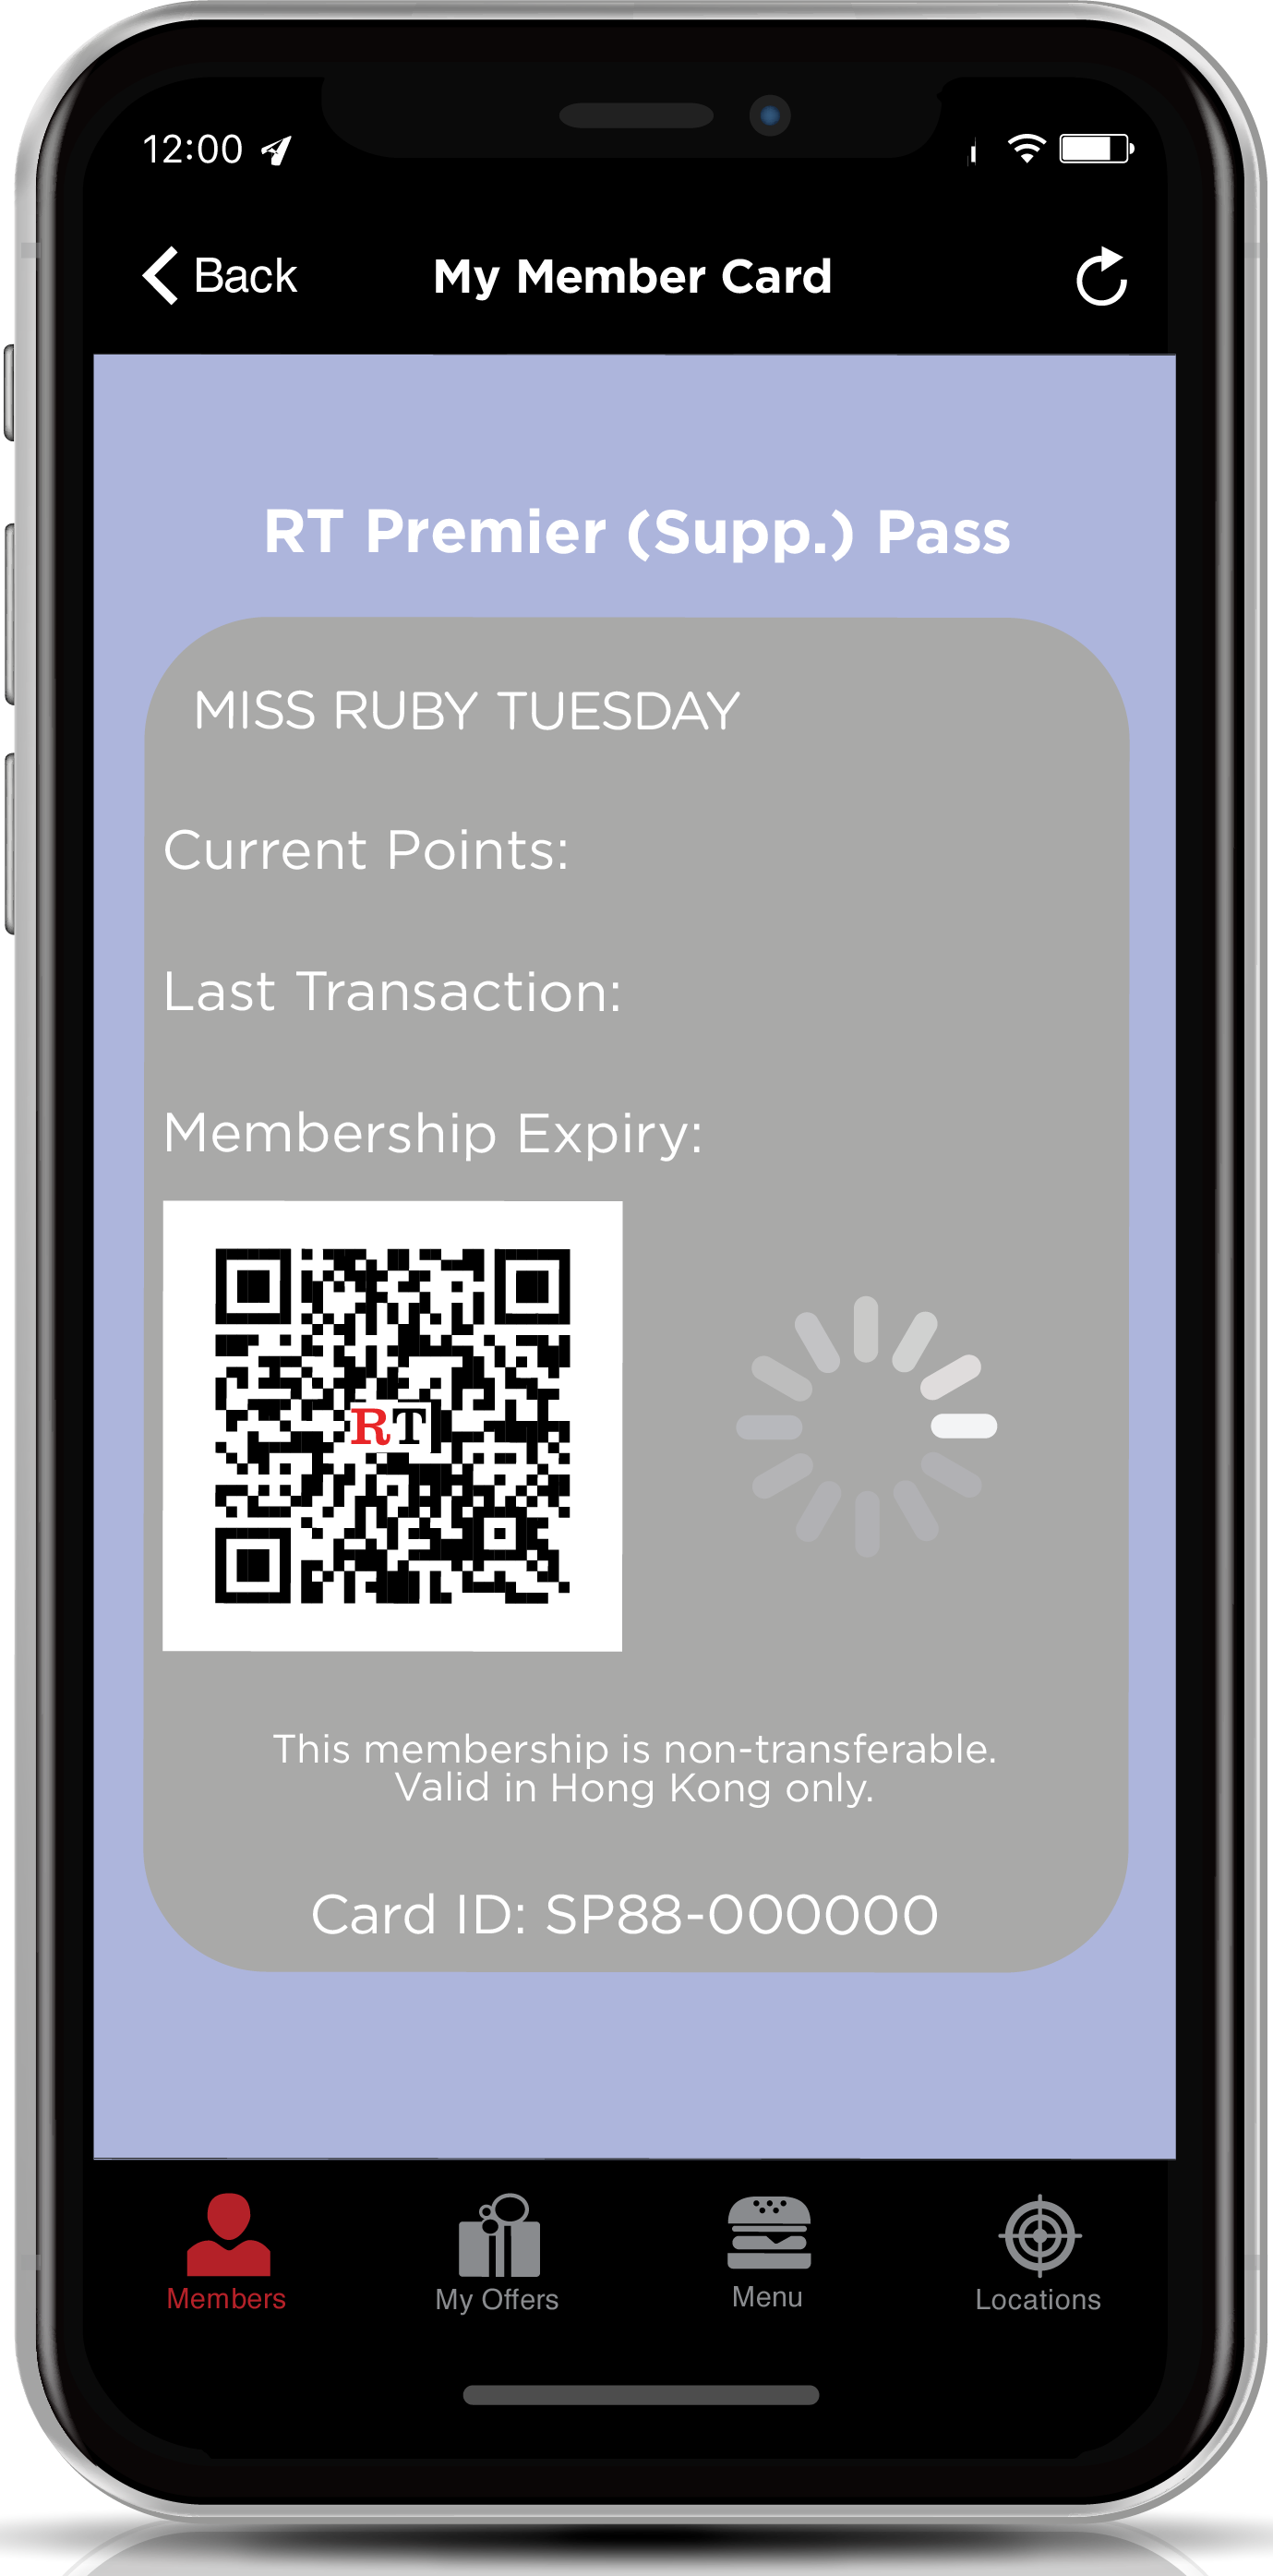 Ruby Tuesday Premier Supplementary Pass